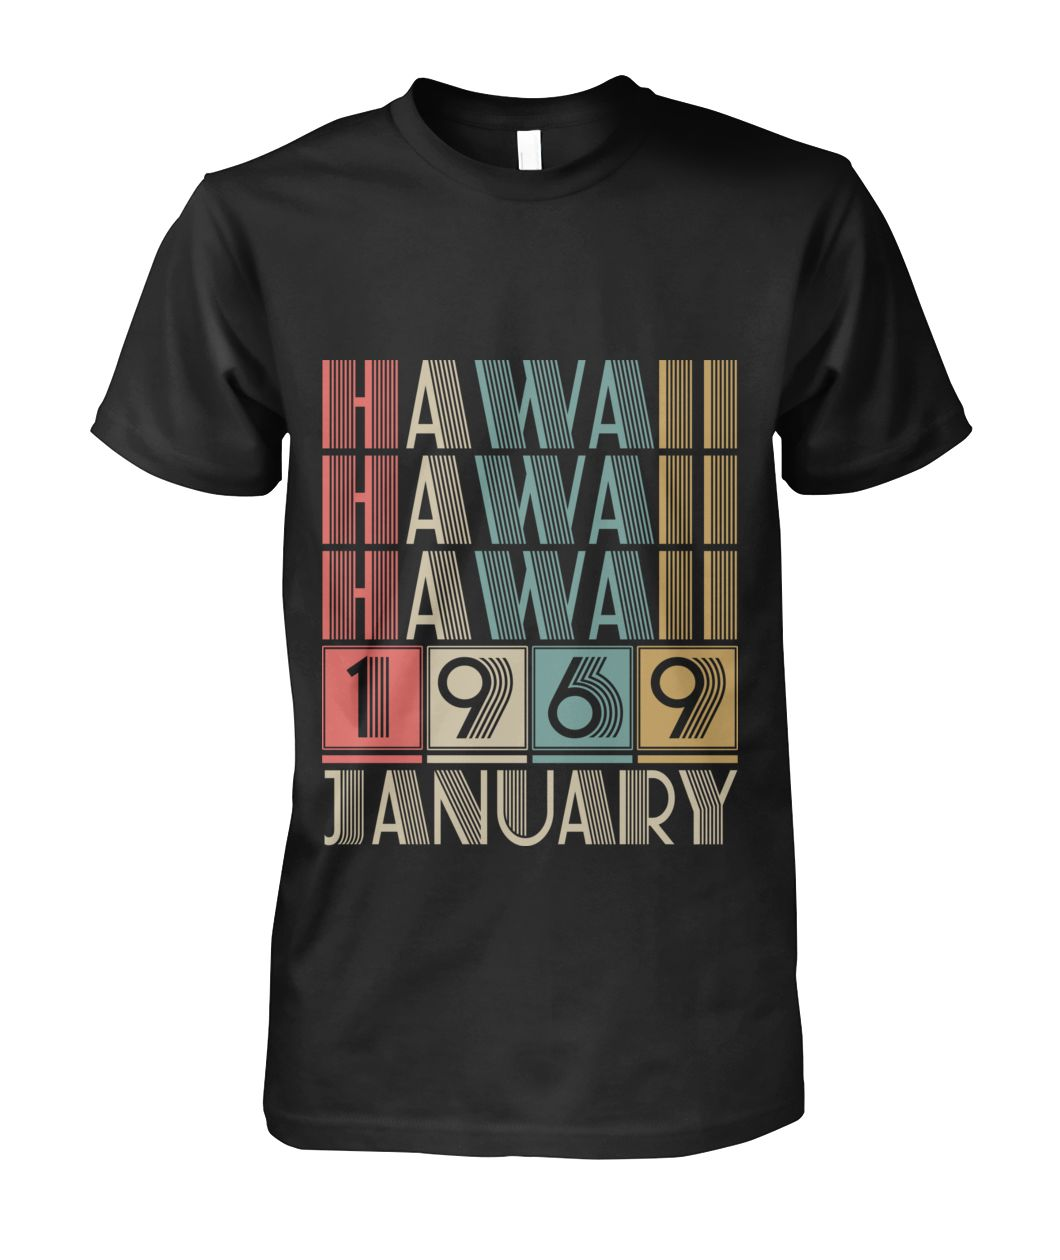 Born in Hawaii in January 1969 t shirt